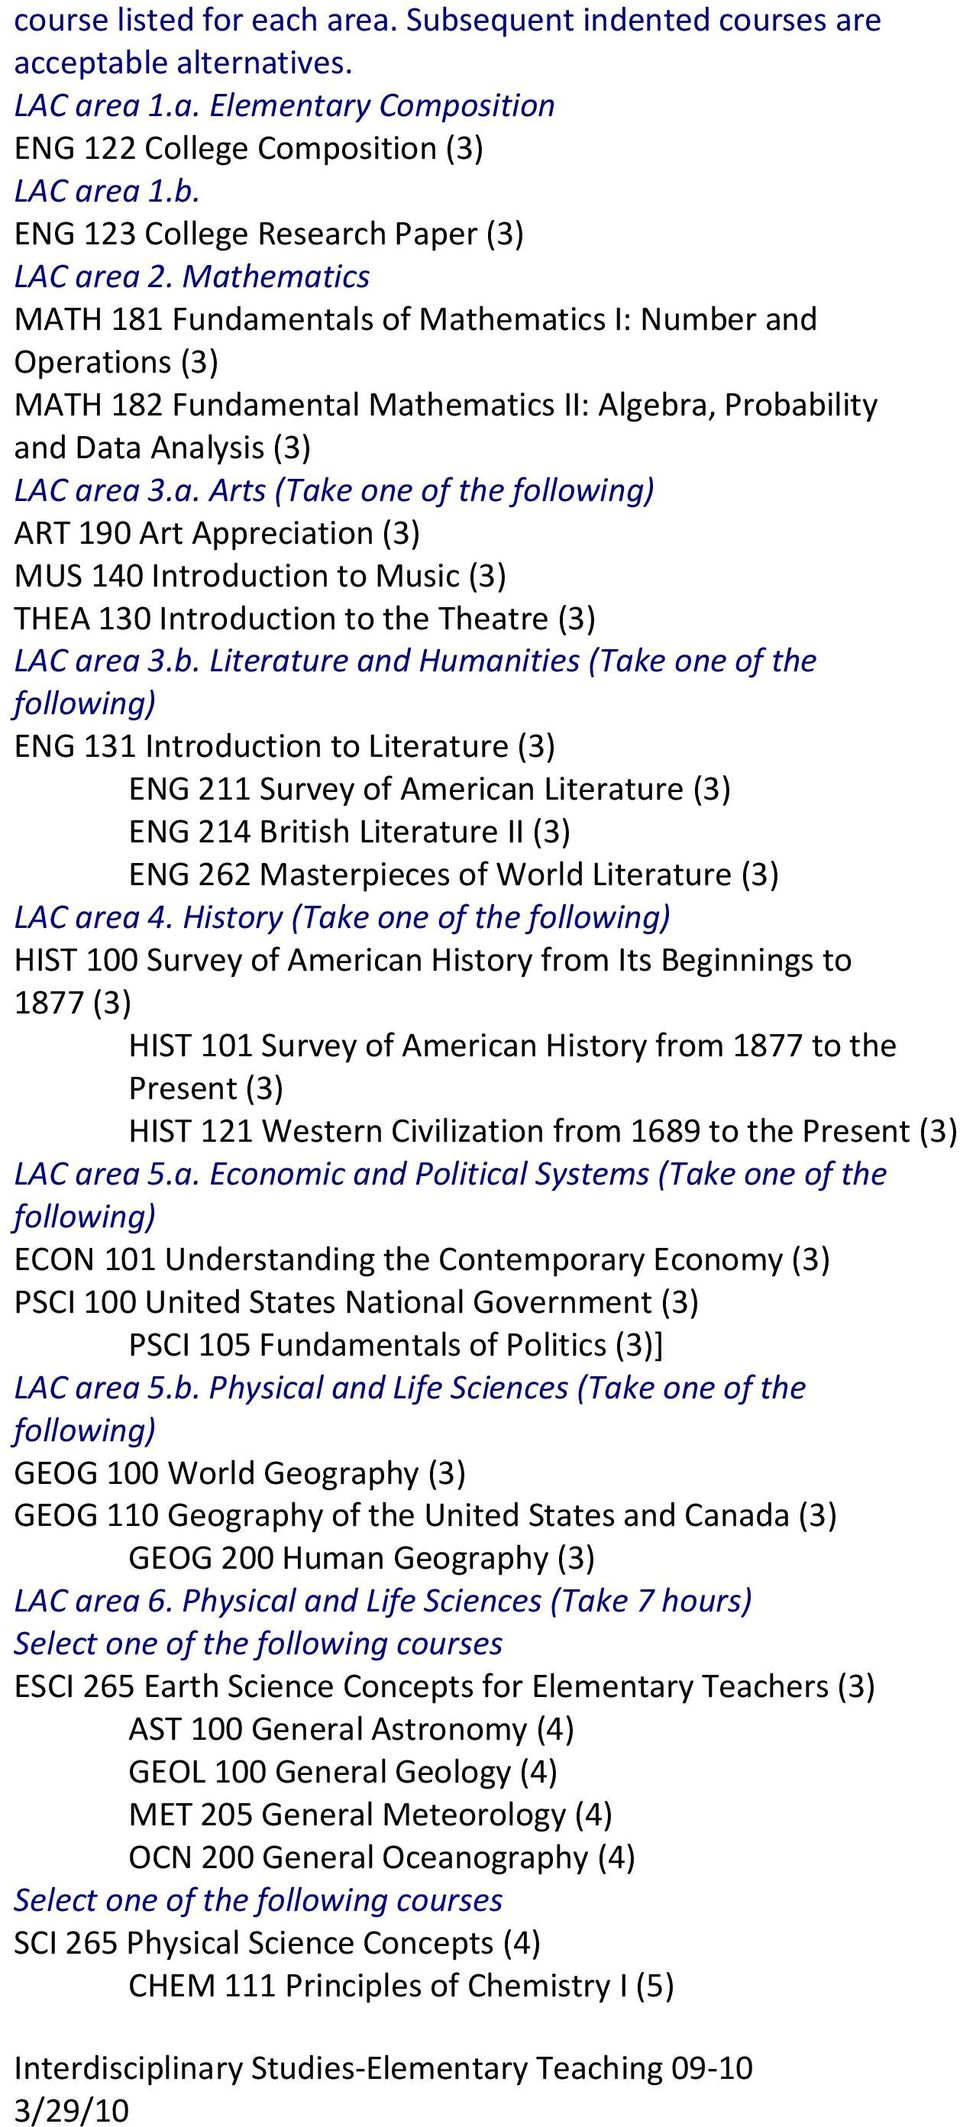 b. Literature and Humanities (Take one of the ENG 131 Introduction to Literature (3) ENG 211 Survey of American Literature (3) ENG 214 British Literature II (3) ENG 262 Masterpieces of World